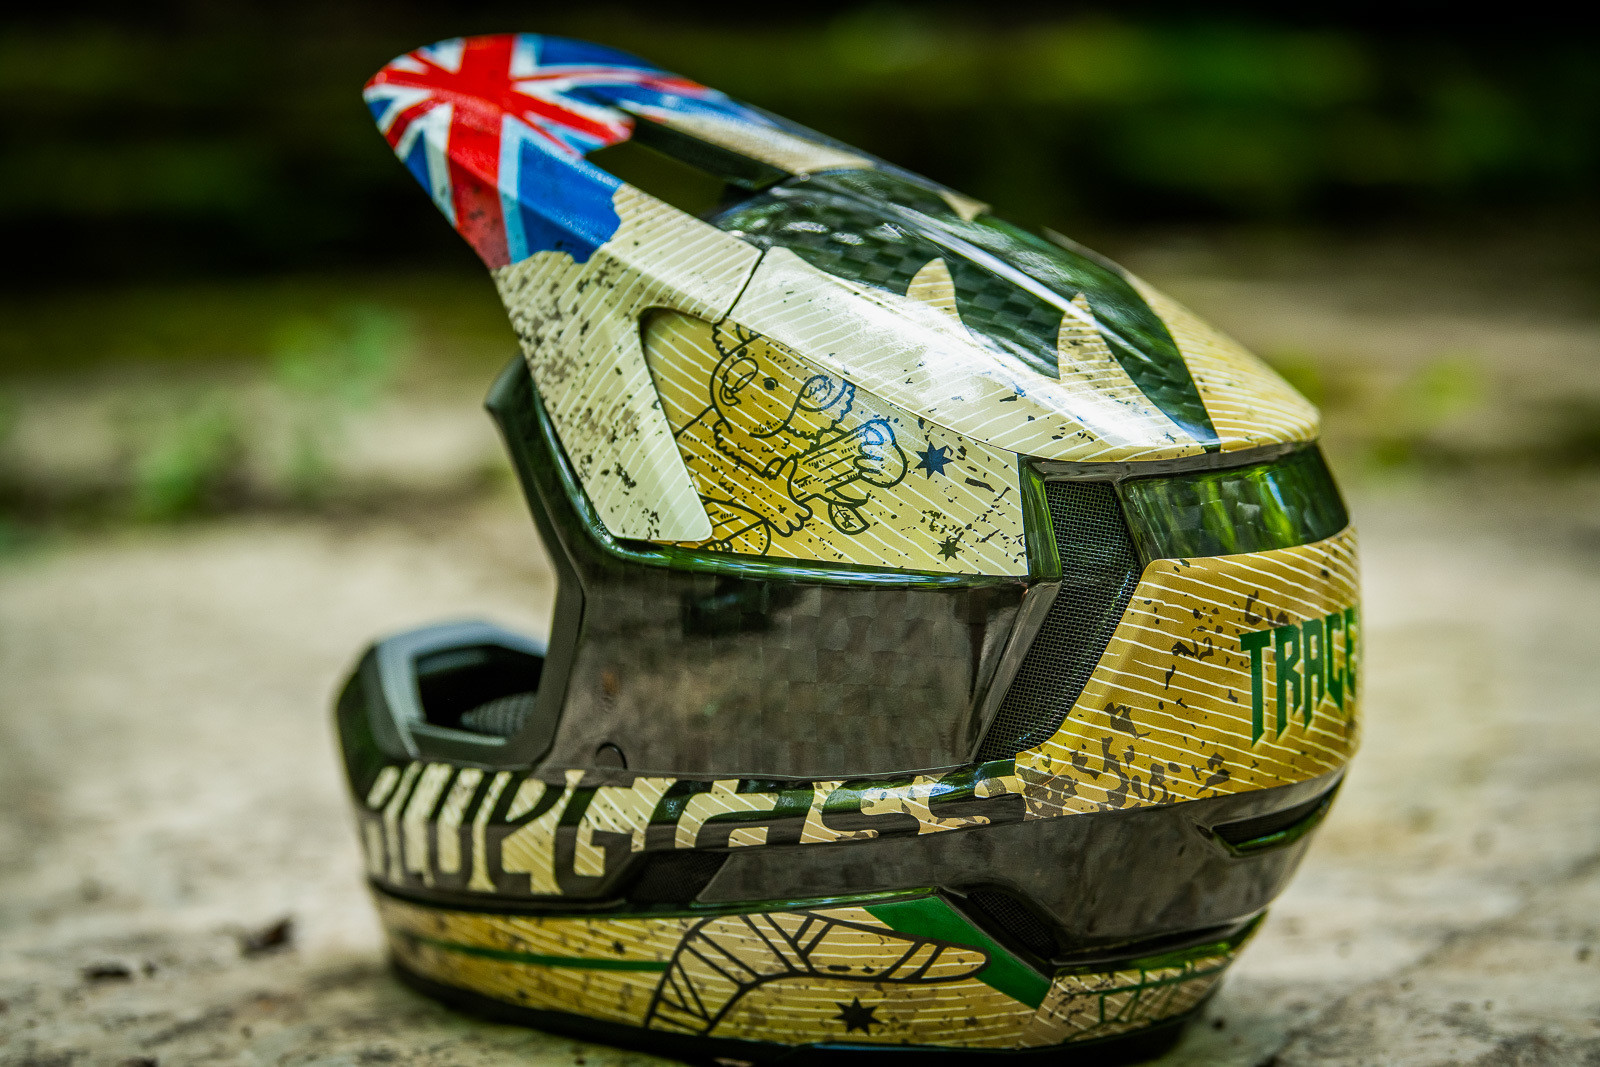 Tracey Hannah's Bluegrass World Champs Helmet - Tracey and Mick Hannah's World Champs Polygon DH Race Bikes - Mountain Biking Pictures - Vital MTB